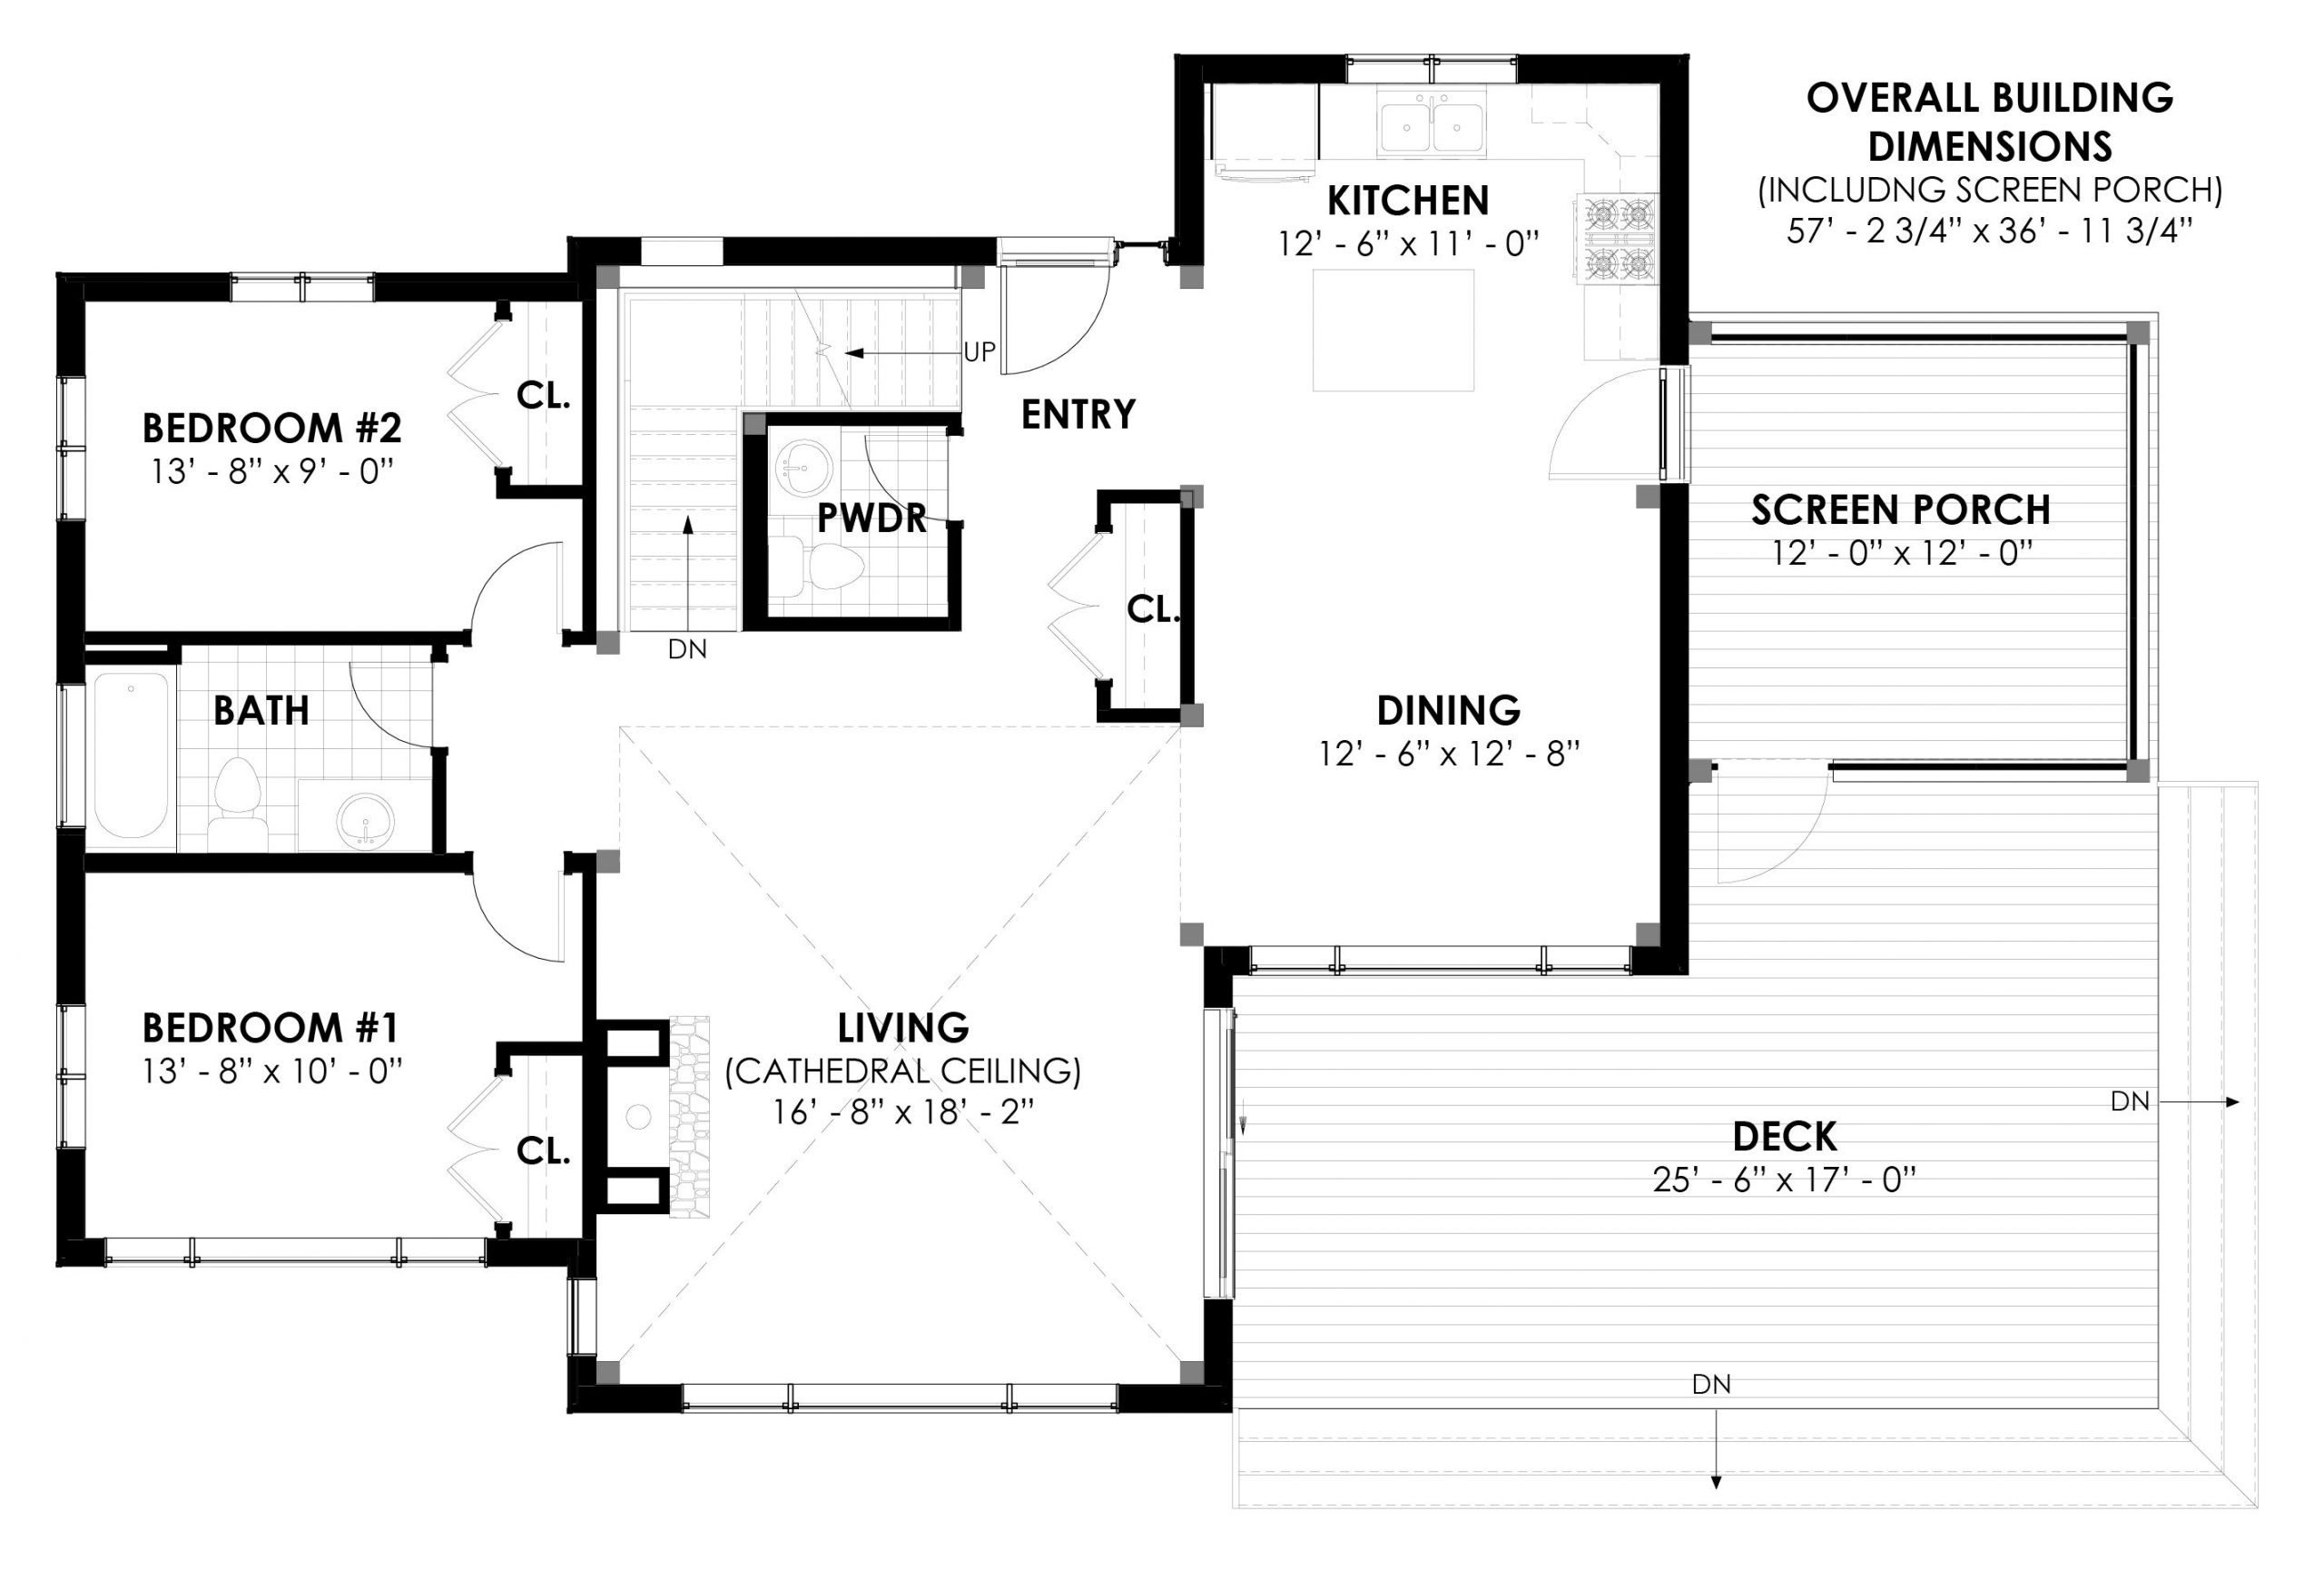 Normerica Timber Frames, House Plan, The Killarney 2134, First Floor Layout